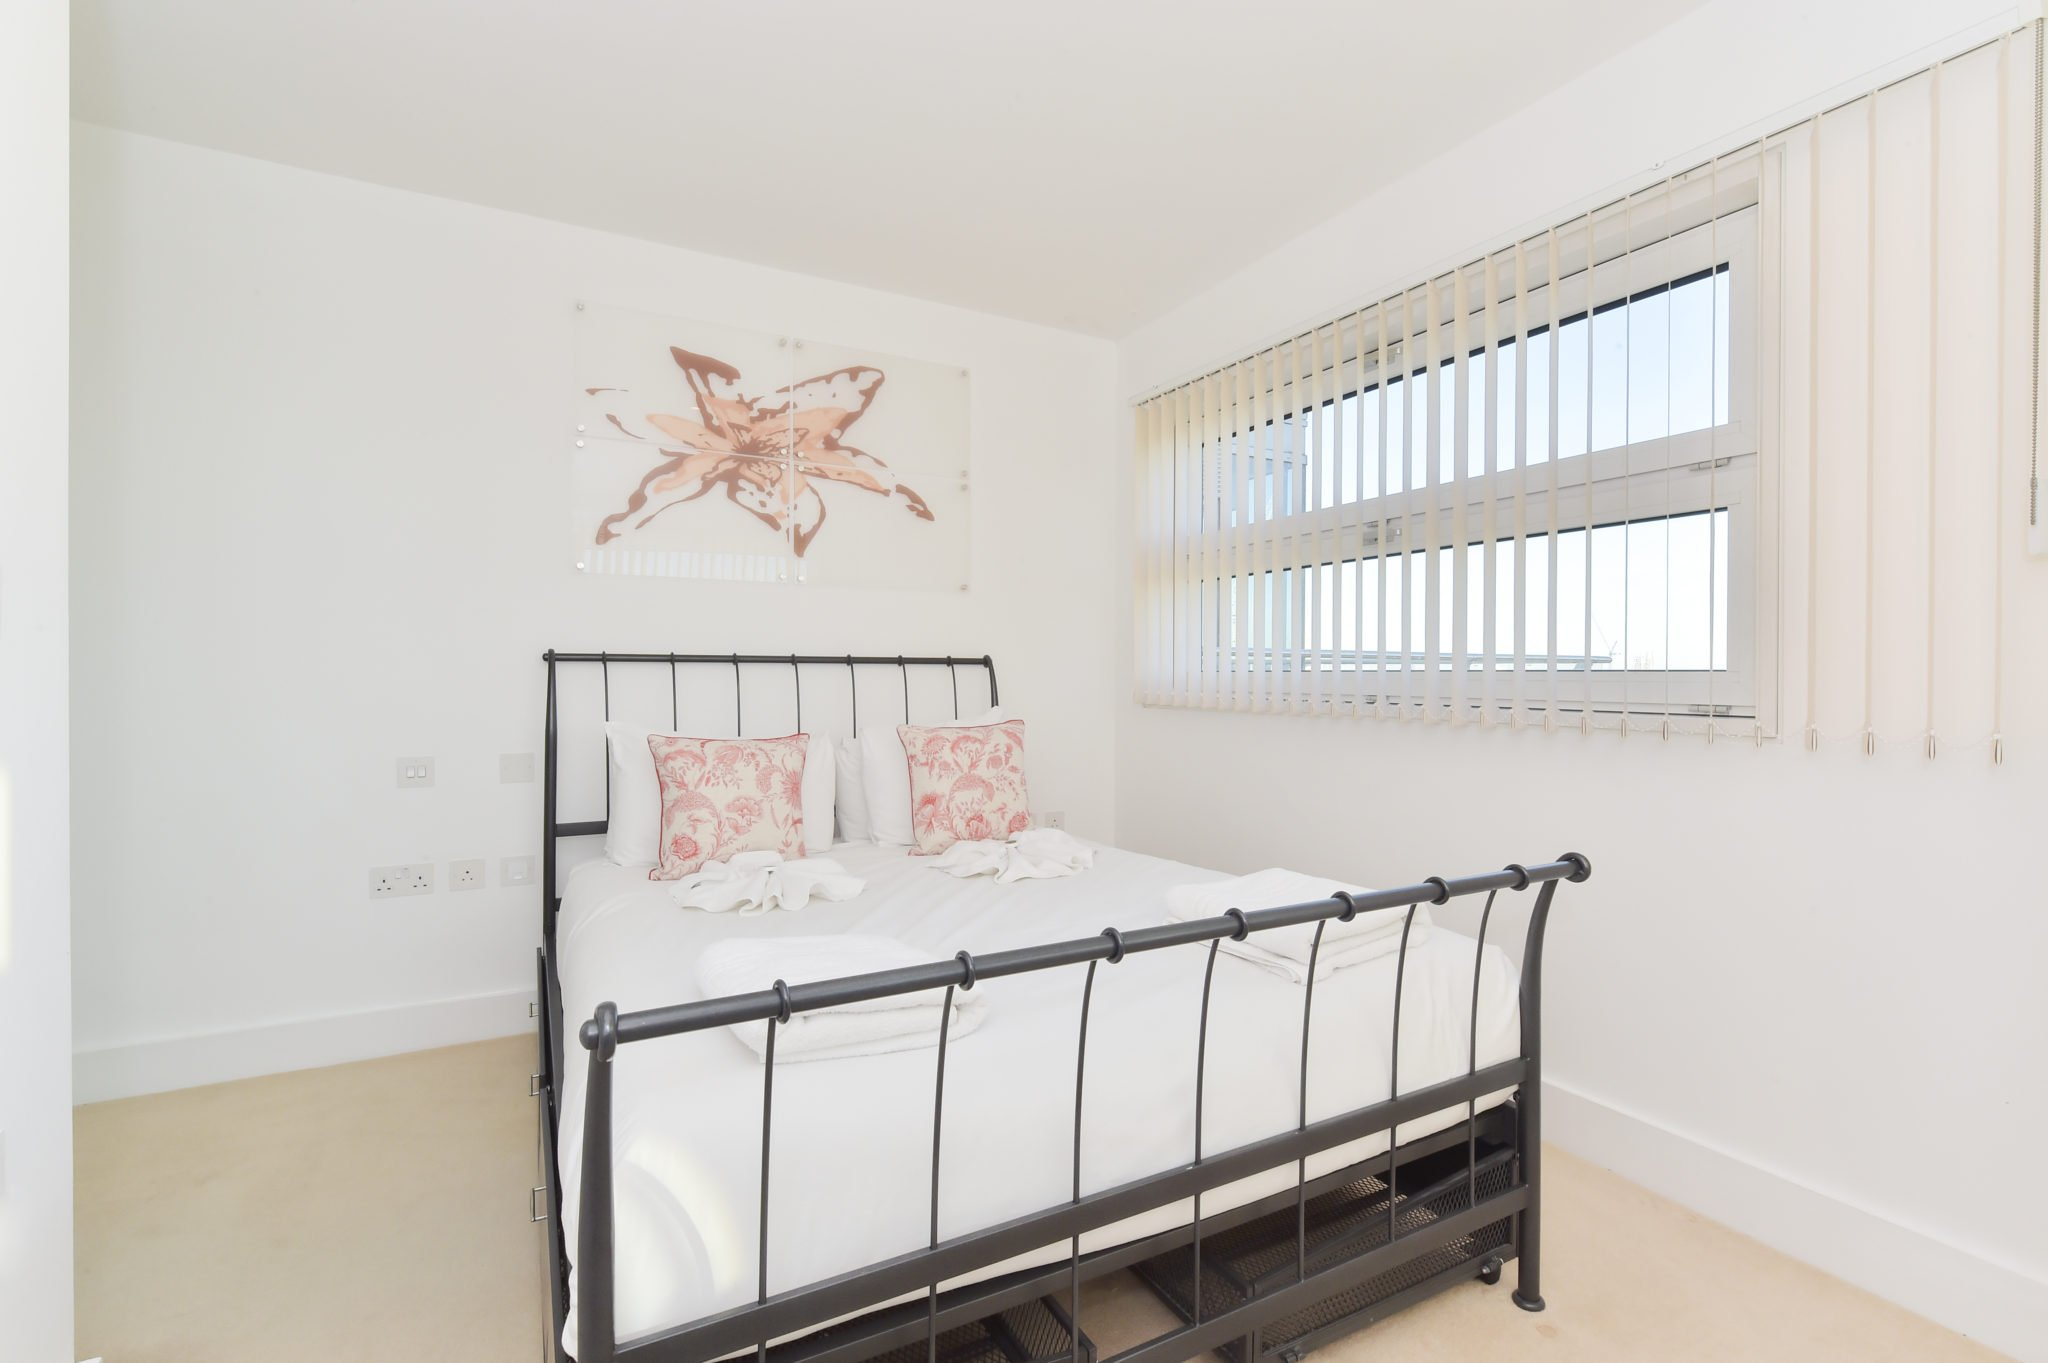 London-Borough-Accommodation-|-Serviced-Apartments-Near-London-Bridge-&-Borough-Market-|---South-London-Short-Let-Apartments-|-BEST-RATES--NO-FEES--BOOK-NOW-|-Urban-Stay